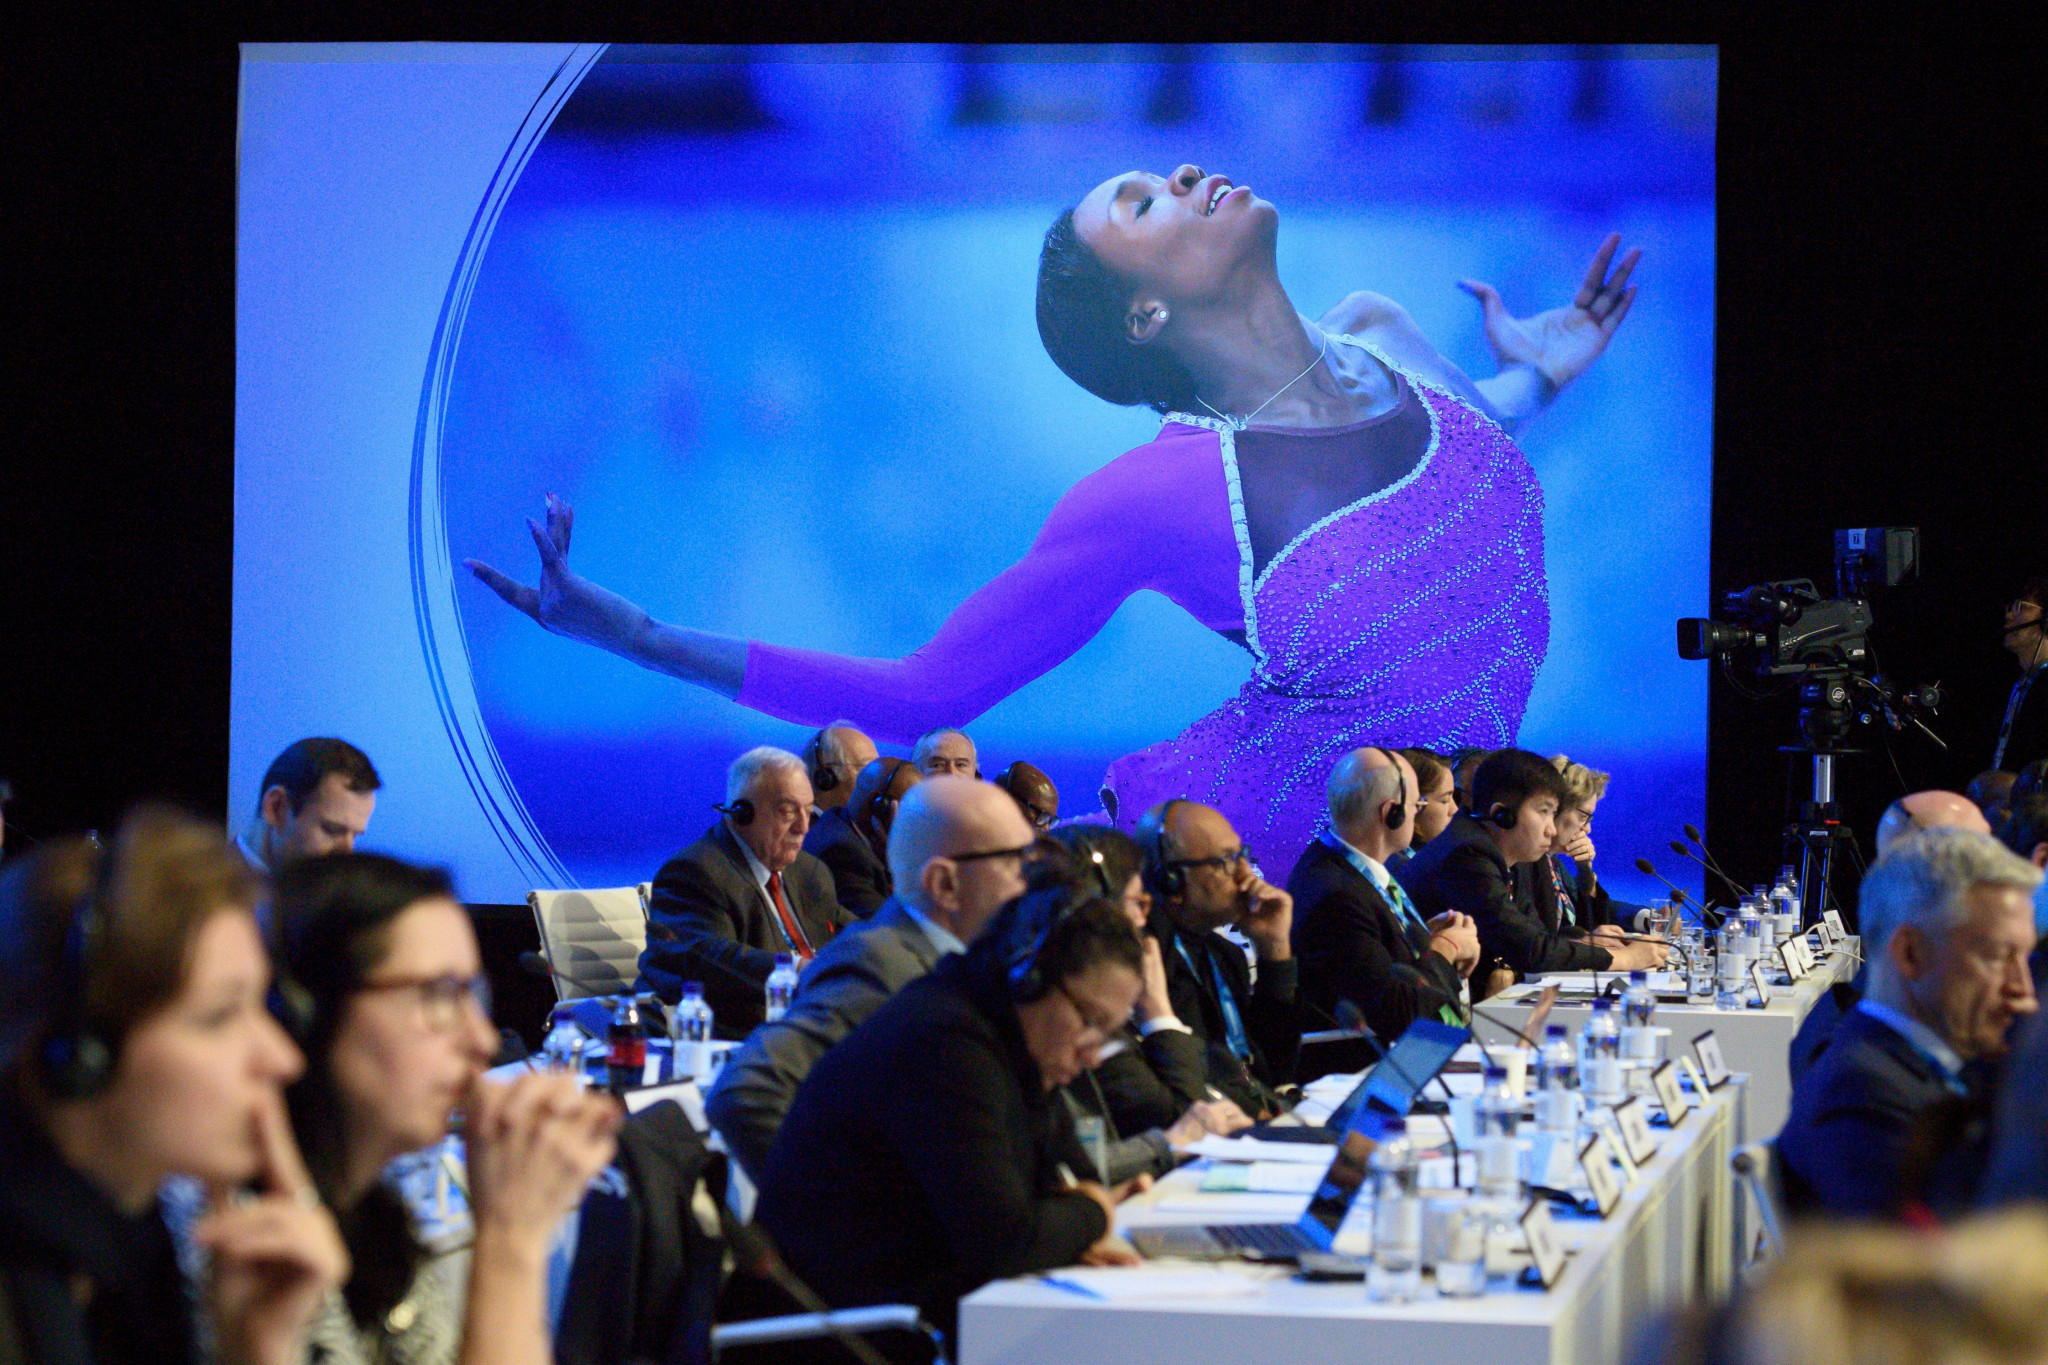 IOC member calls for governing bodies to sanction nations who exceed set number of doping failures